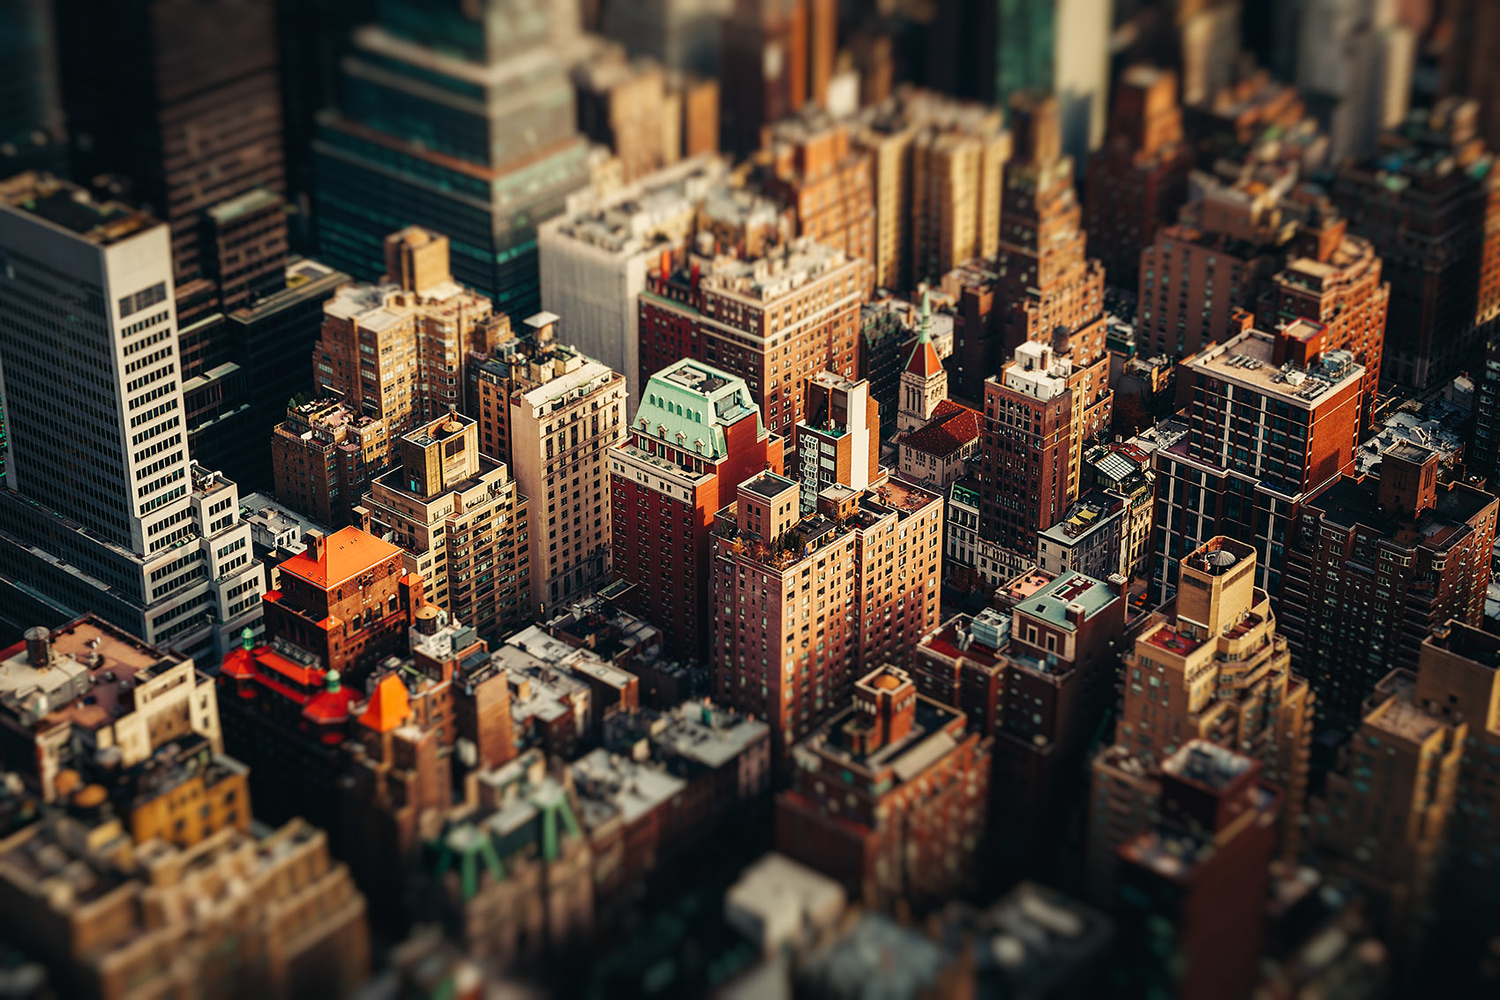 NYC by Tasos Anestis